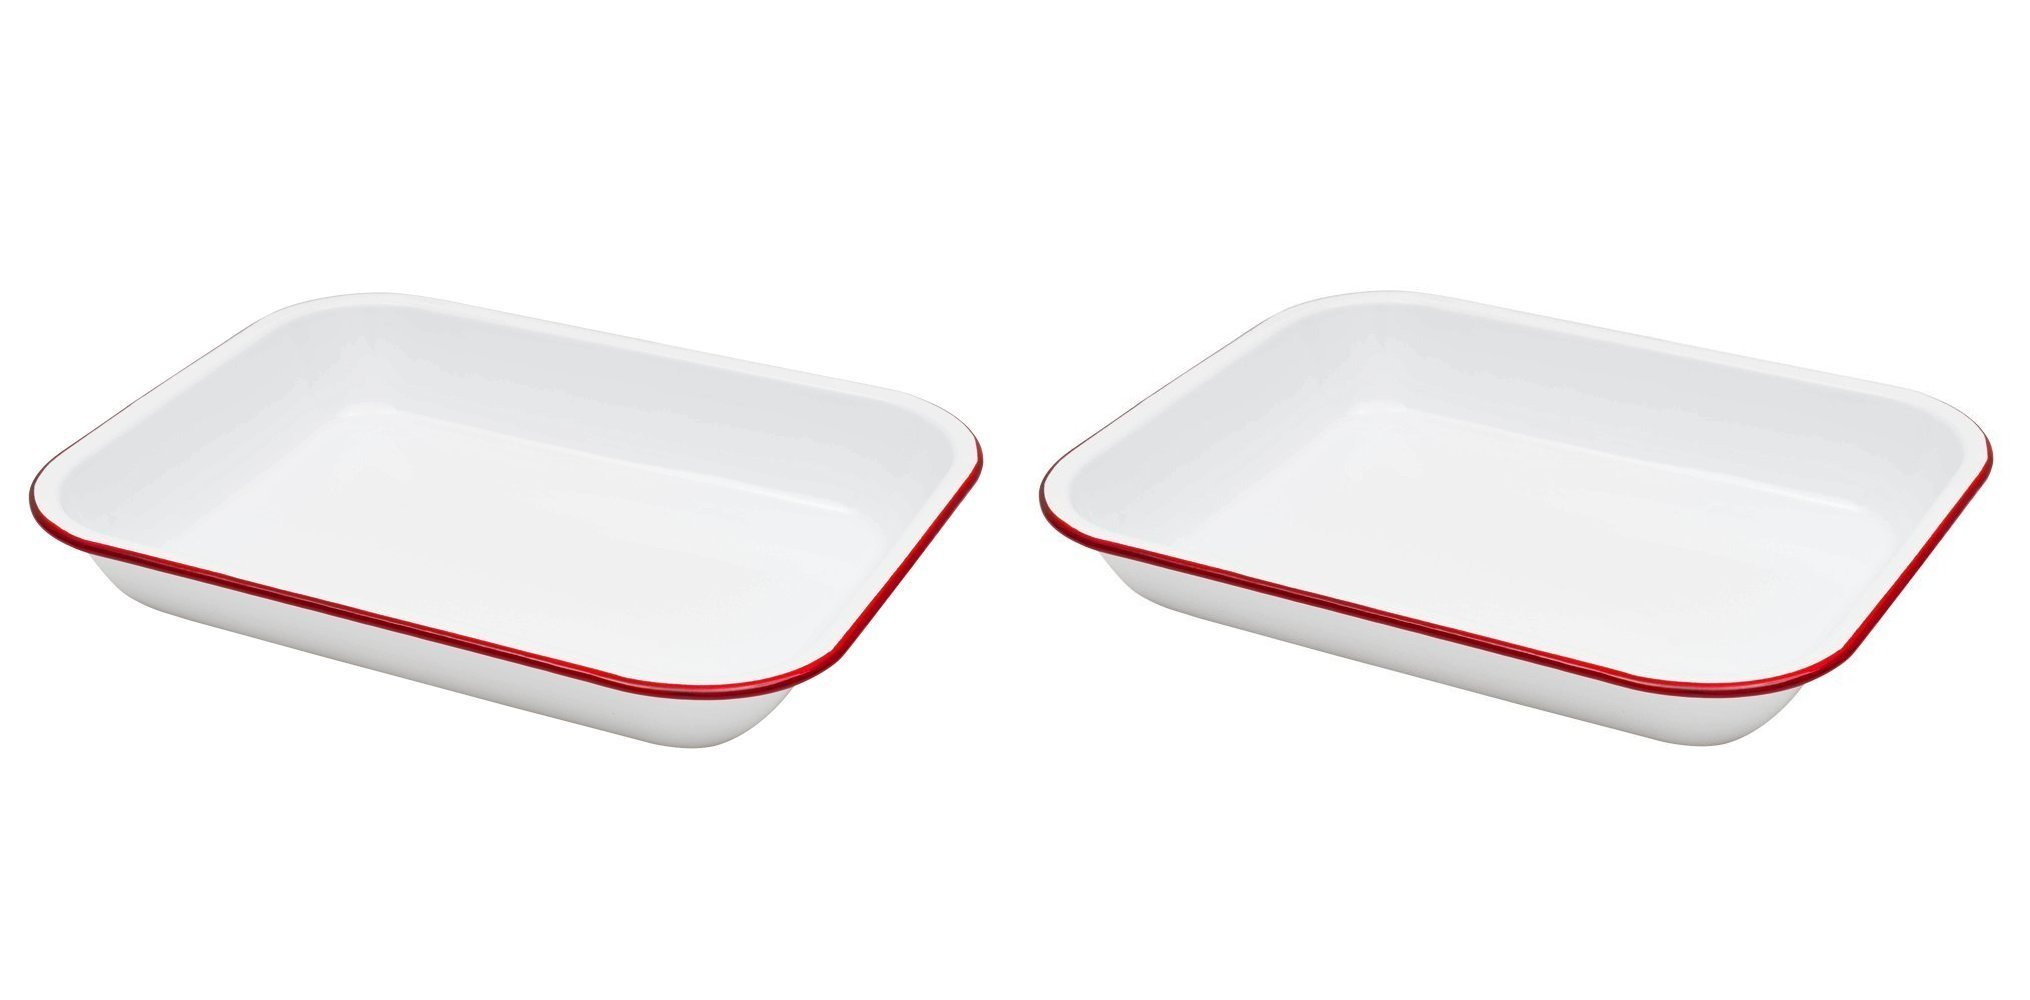 Crow Canyon - Set of 2 Enamelware Large 3 Quart Roasting Pans (White with Red Rim)